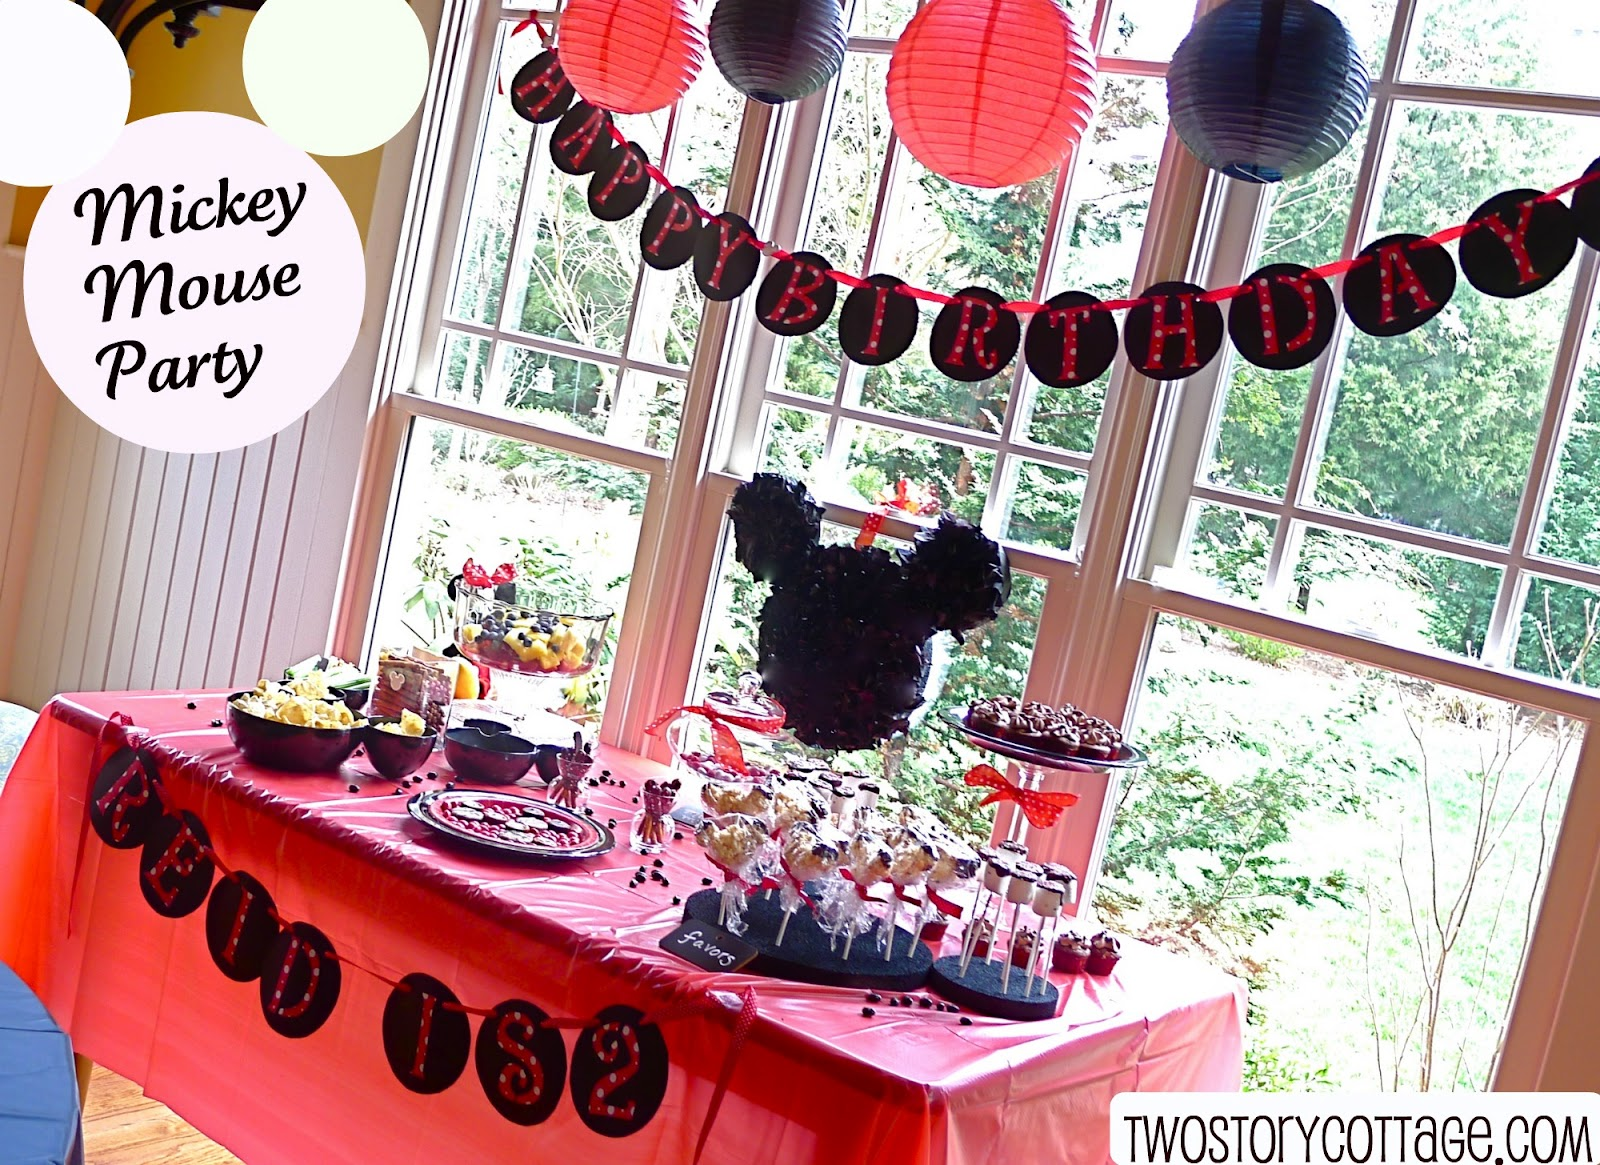 how to add stoery house party